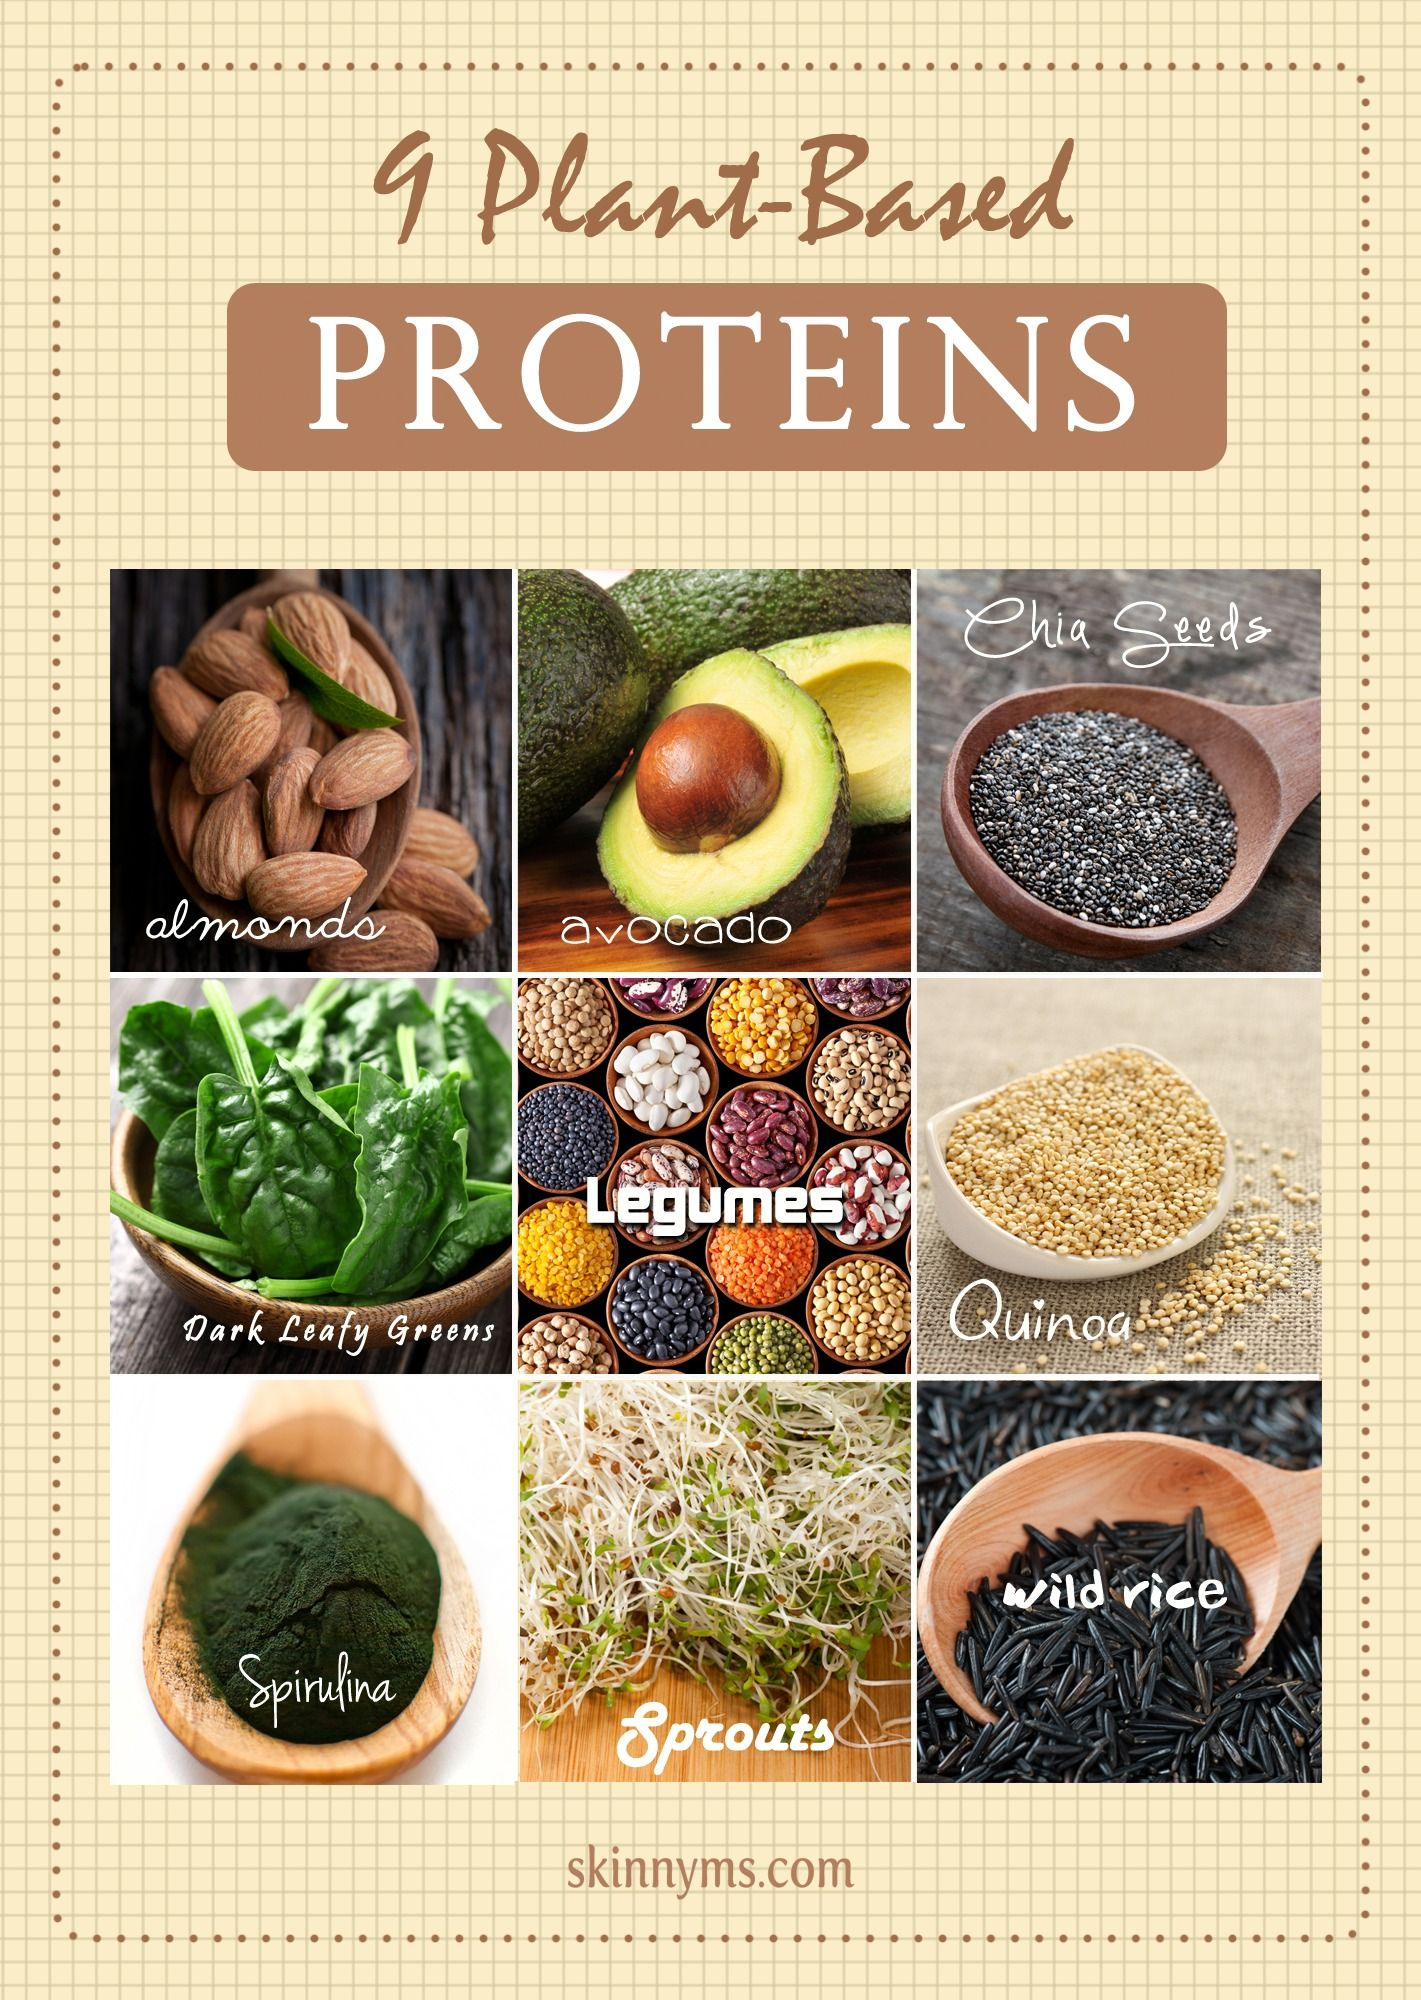 9 Plant-Based Proteins